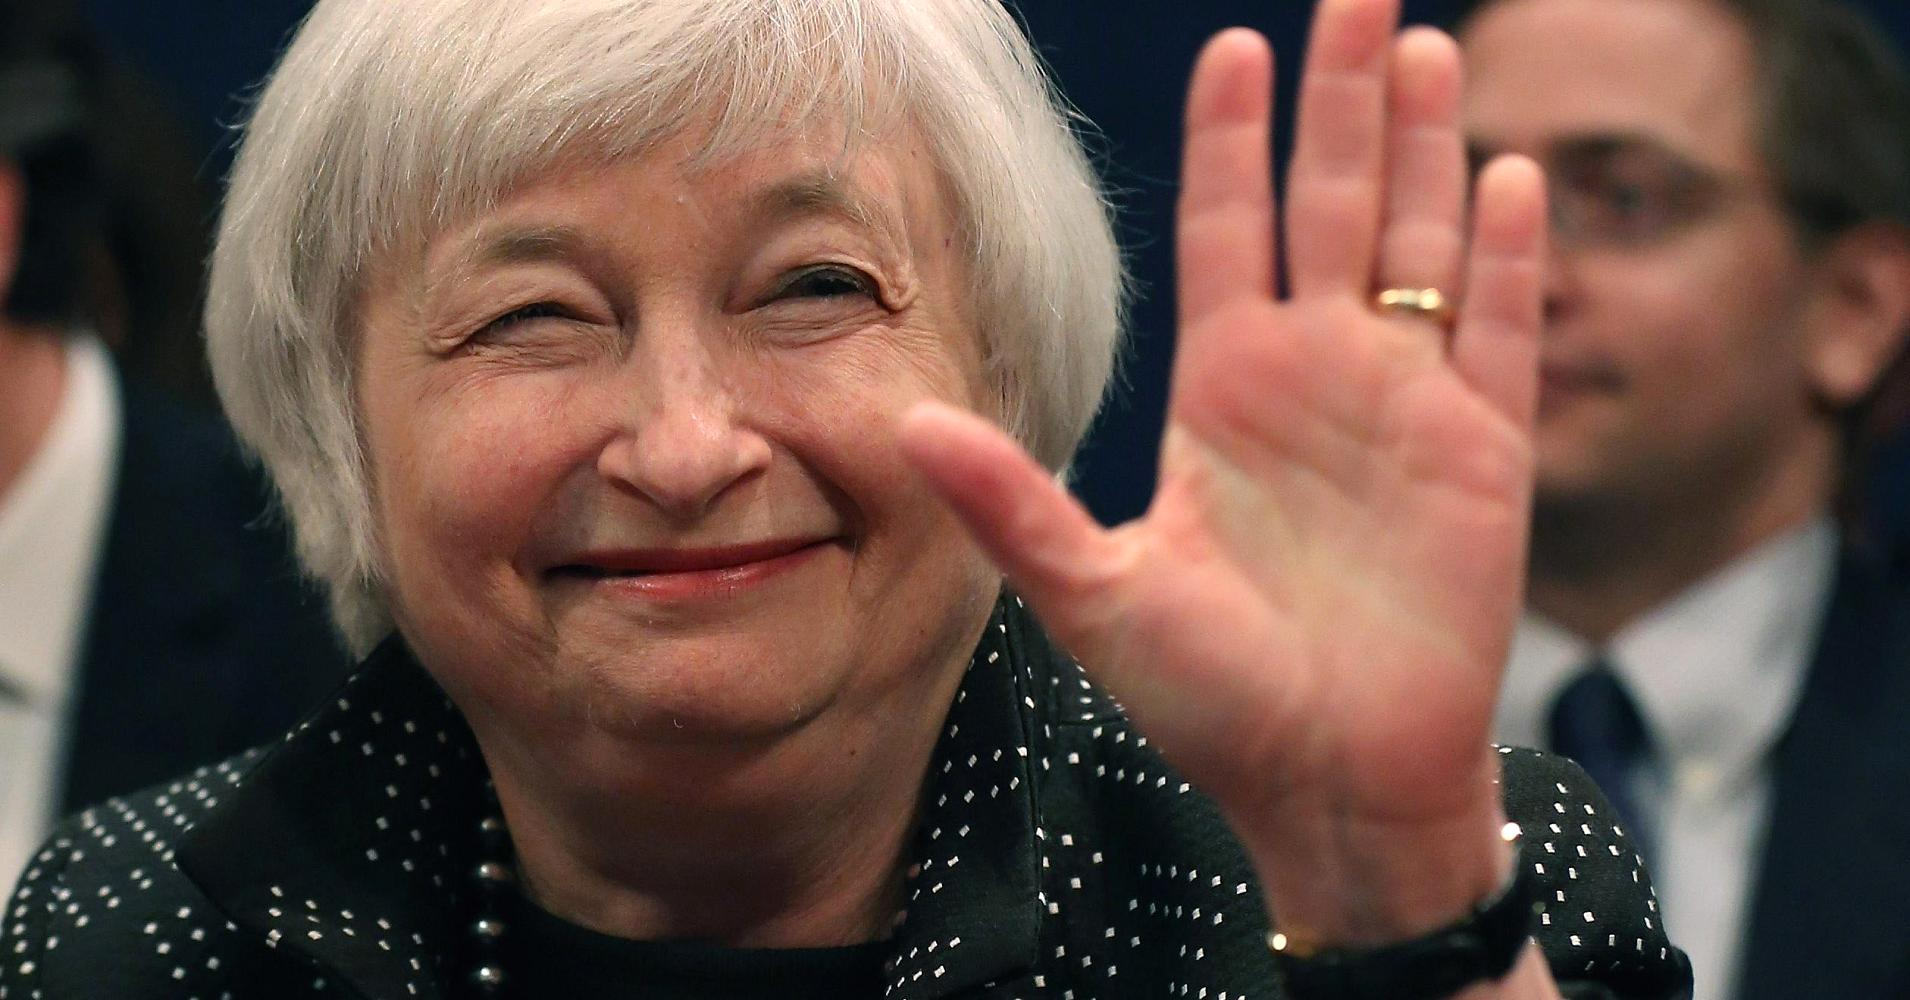 Janet Yellen waives goodbye with a smile on her face